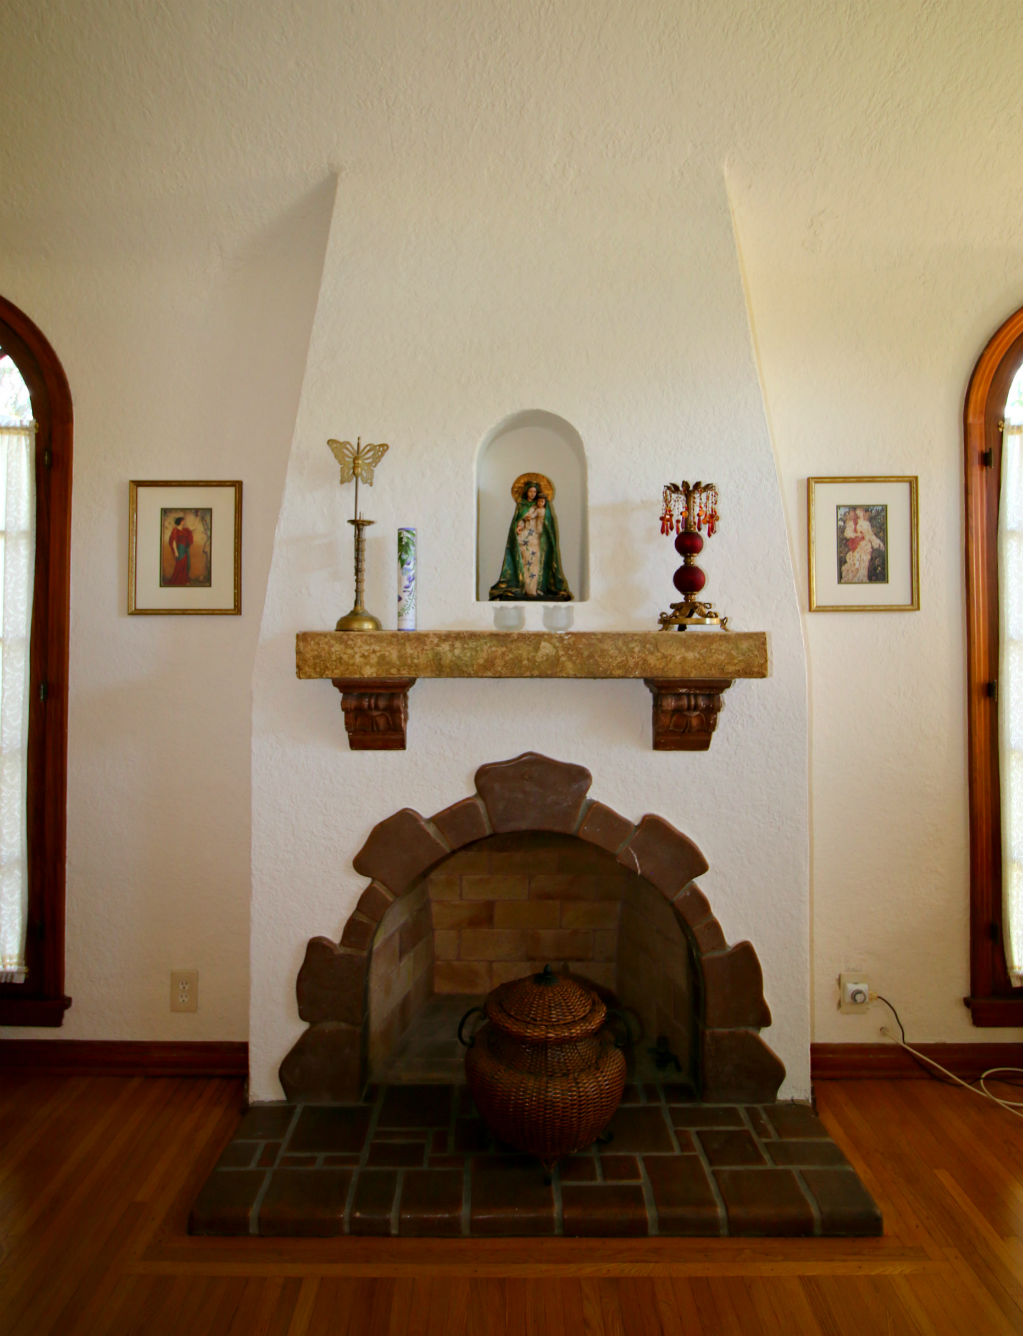 Wood-burning fireplace with alcove.